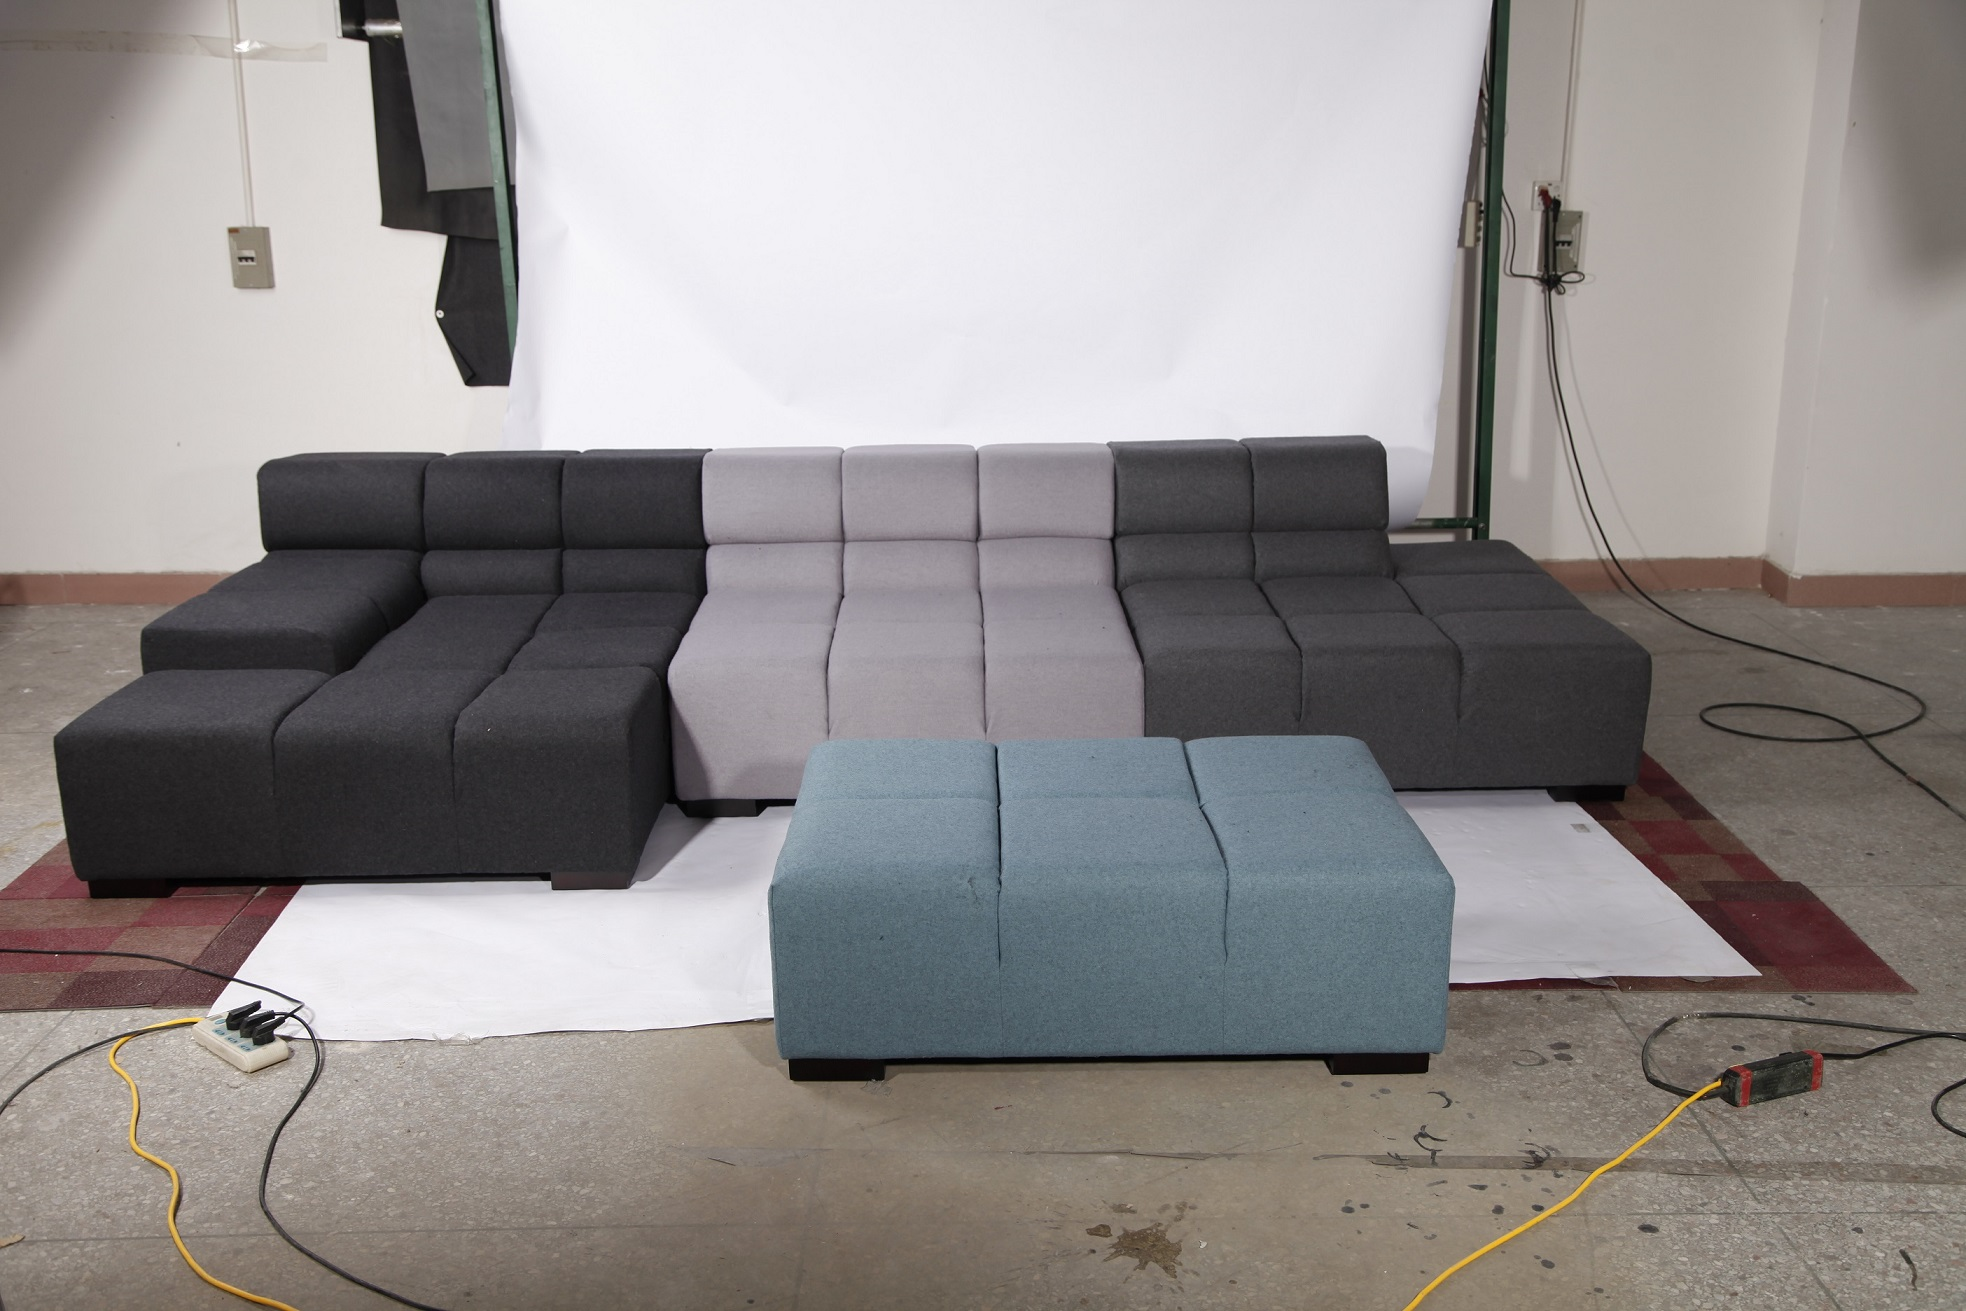 Tufty time sofa replica